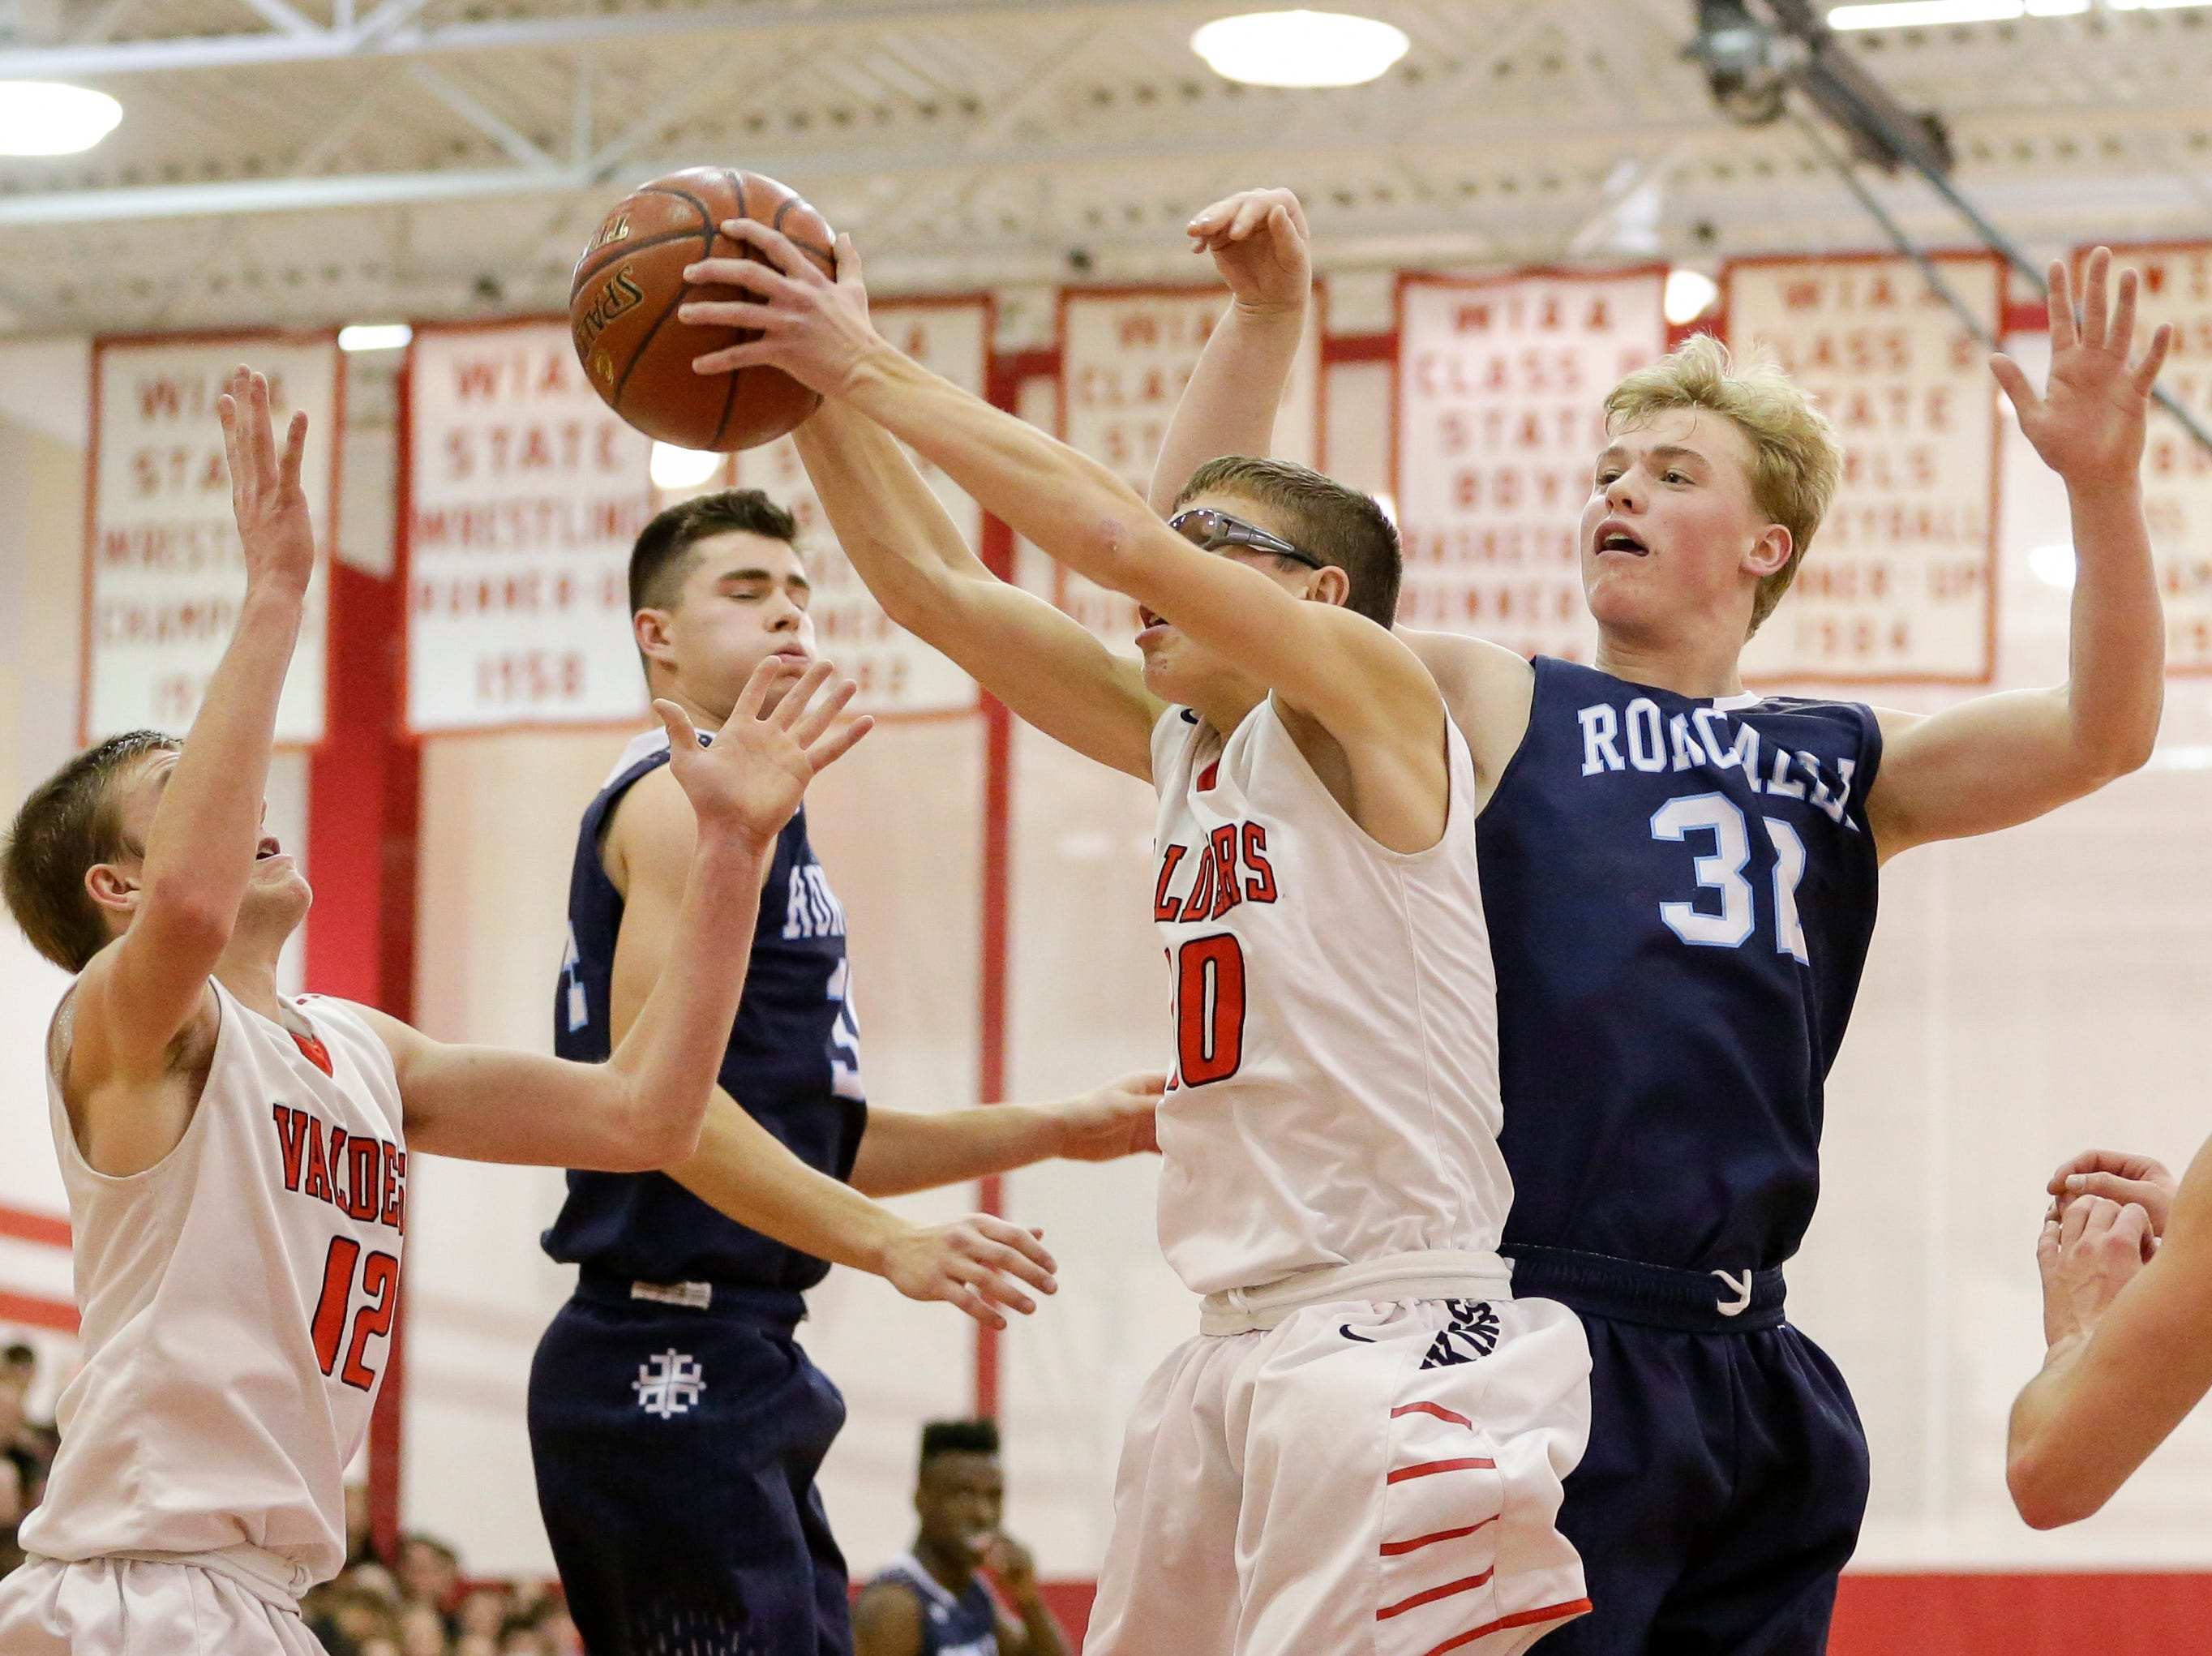 Valders' Aiden Fochs (10) grabs a rebound against Roncalli during an Eastern Wisconsin Conference game at Valders High School Thursday, January 3, 2019, in Valders, Wis. Joshua Clark/USA TODAY NETWORK-Wisconsin